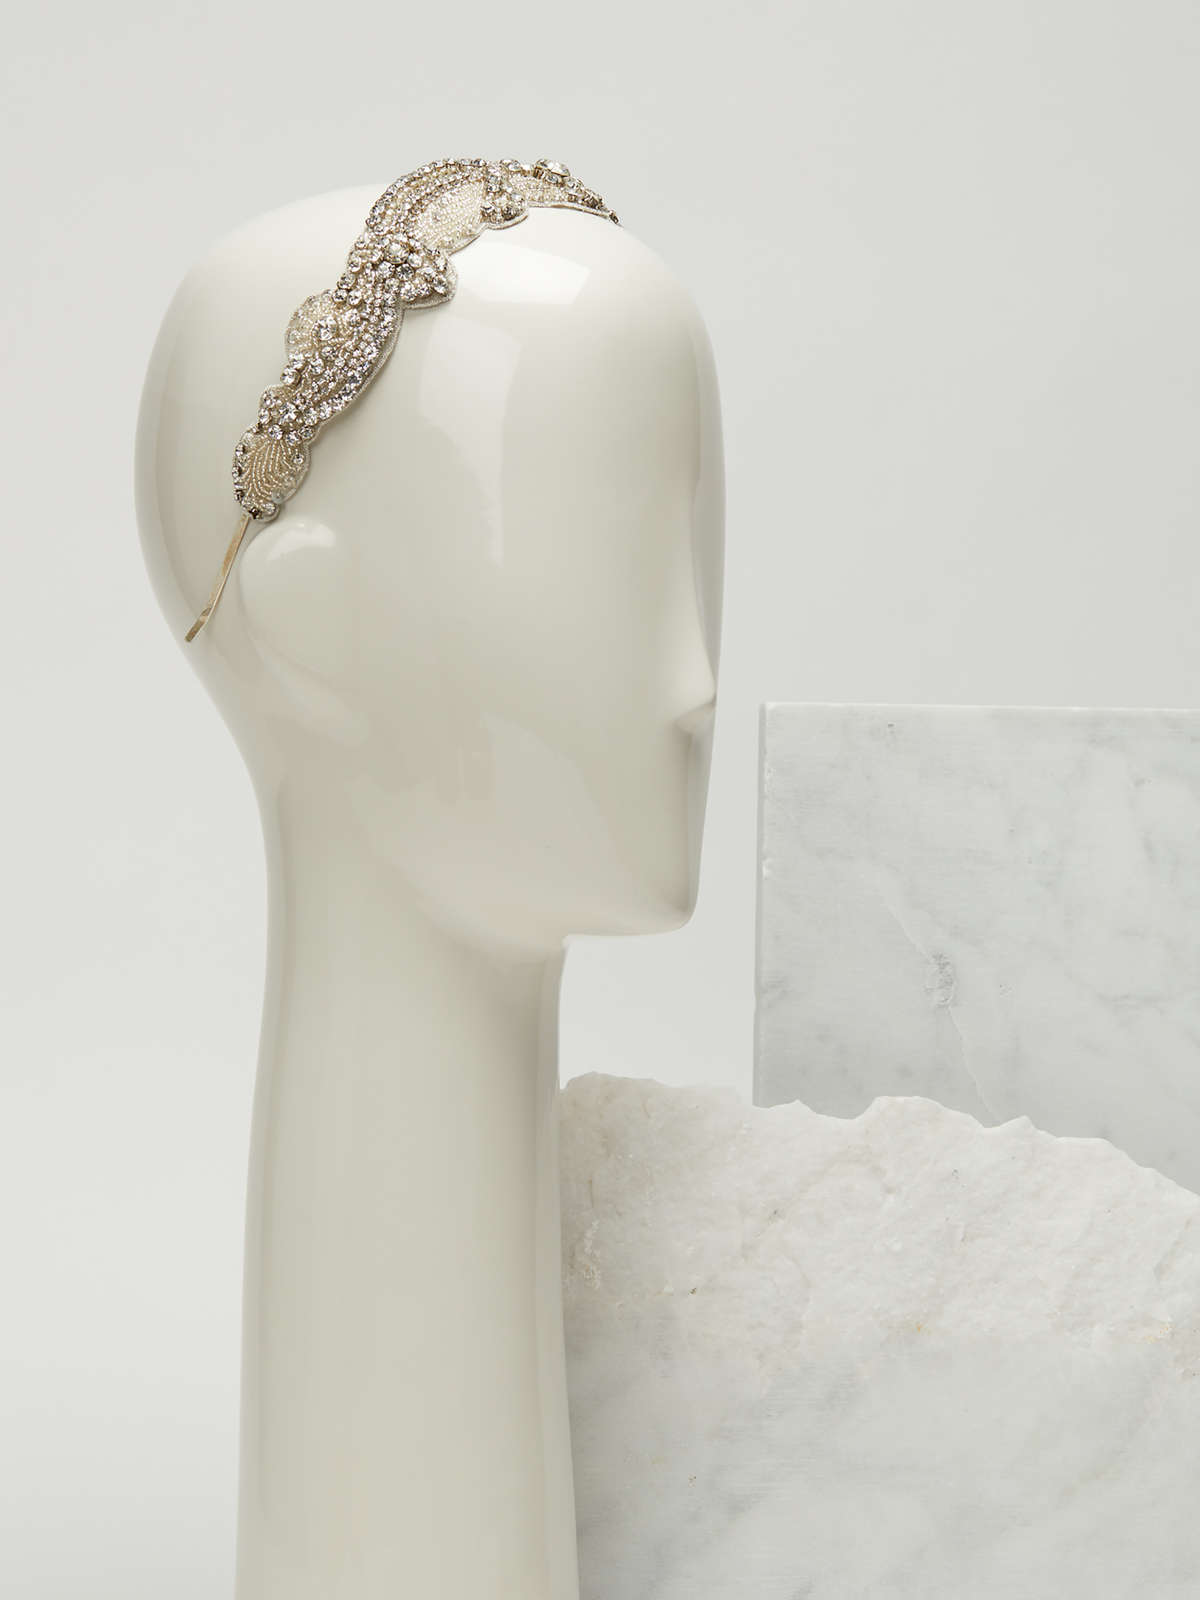 Rhinestone embroidered headband